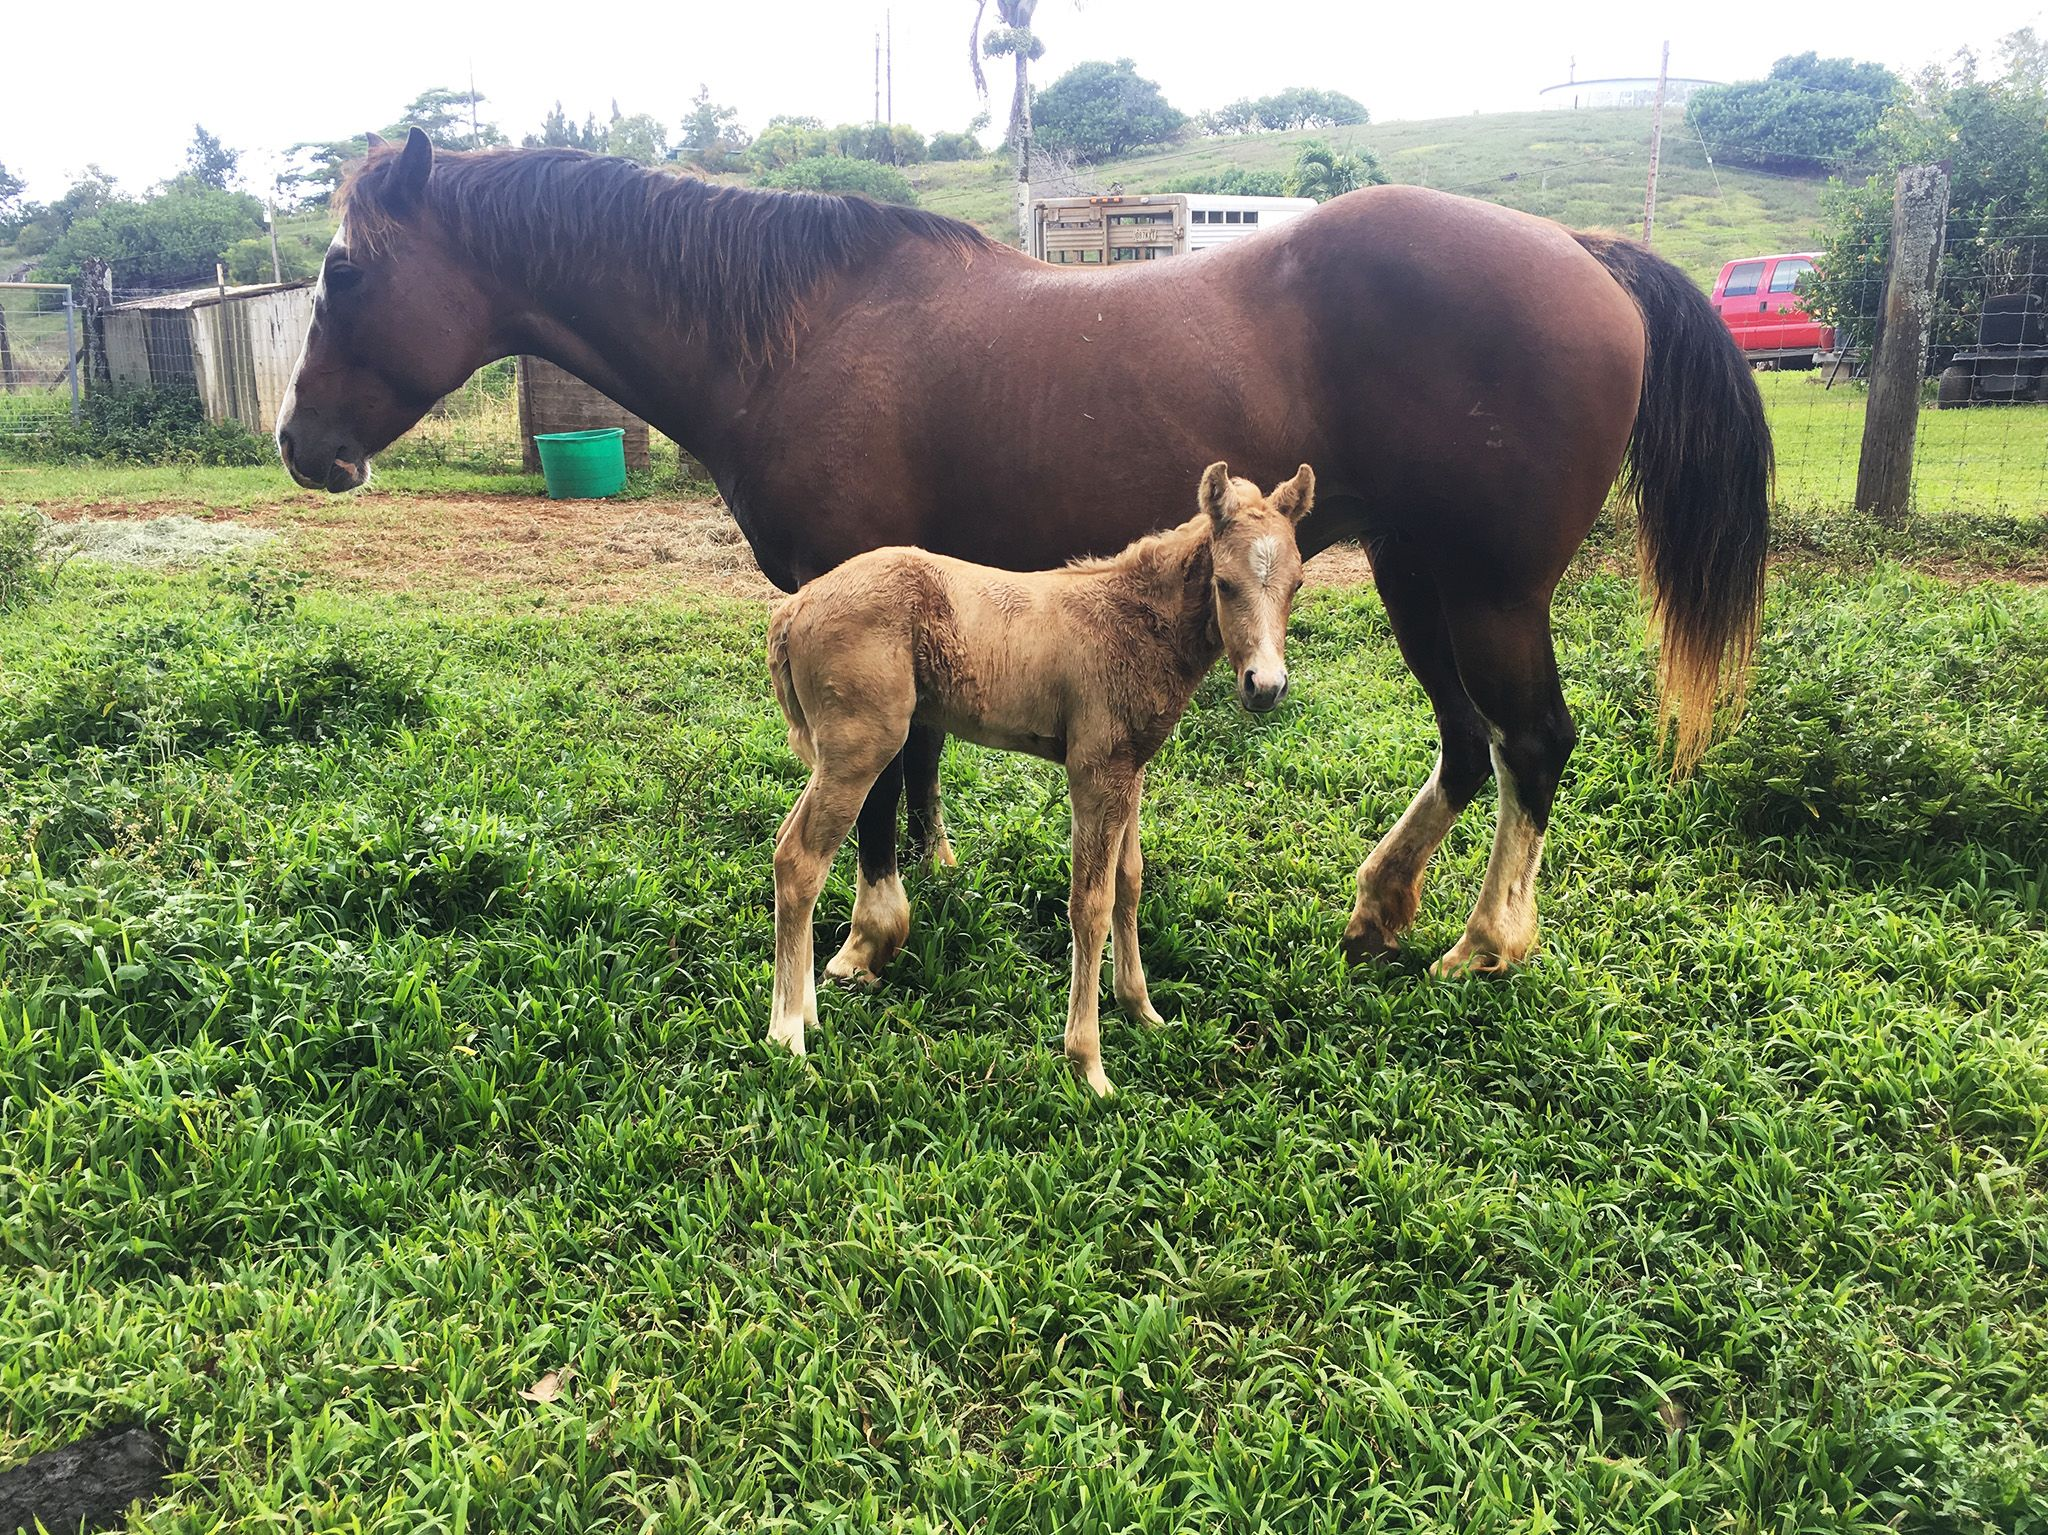 Kauai, HI:  Royal the baby horse and mom Sapphire. This image is from The Adventures of Buckeye... [Photo of the day - May 2018]